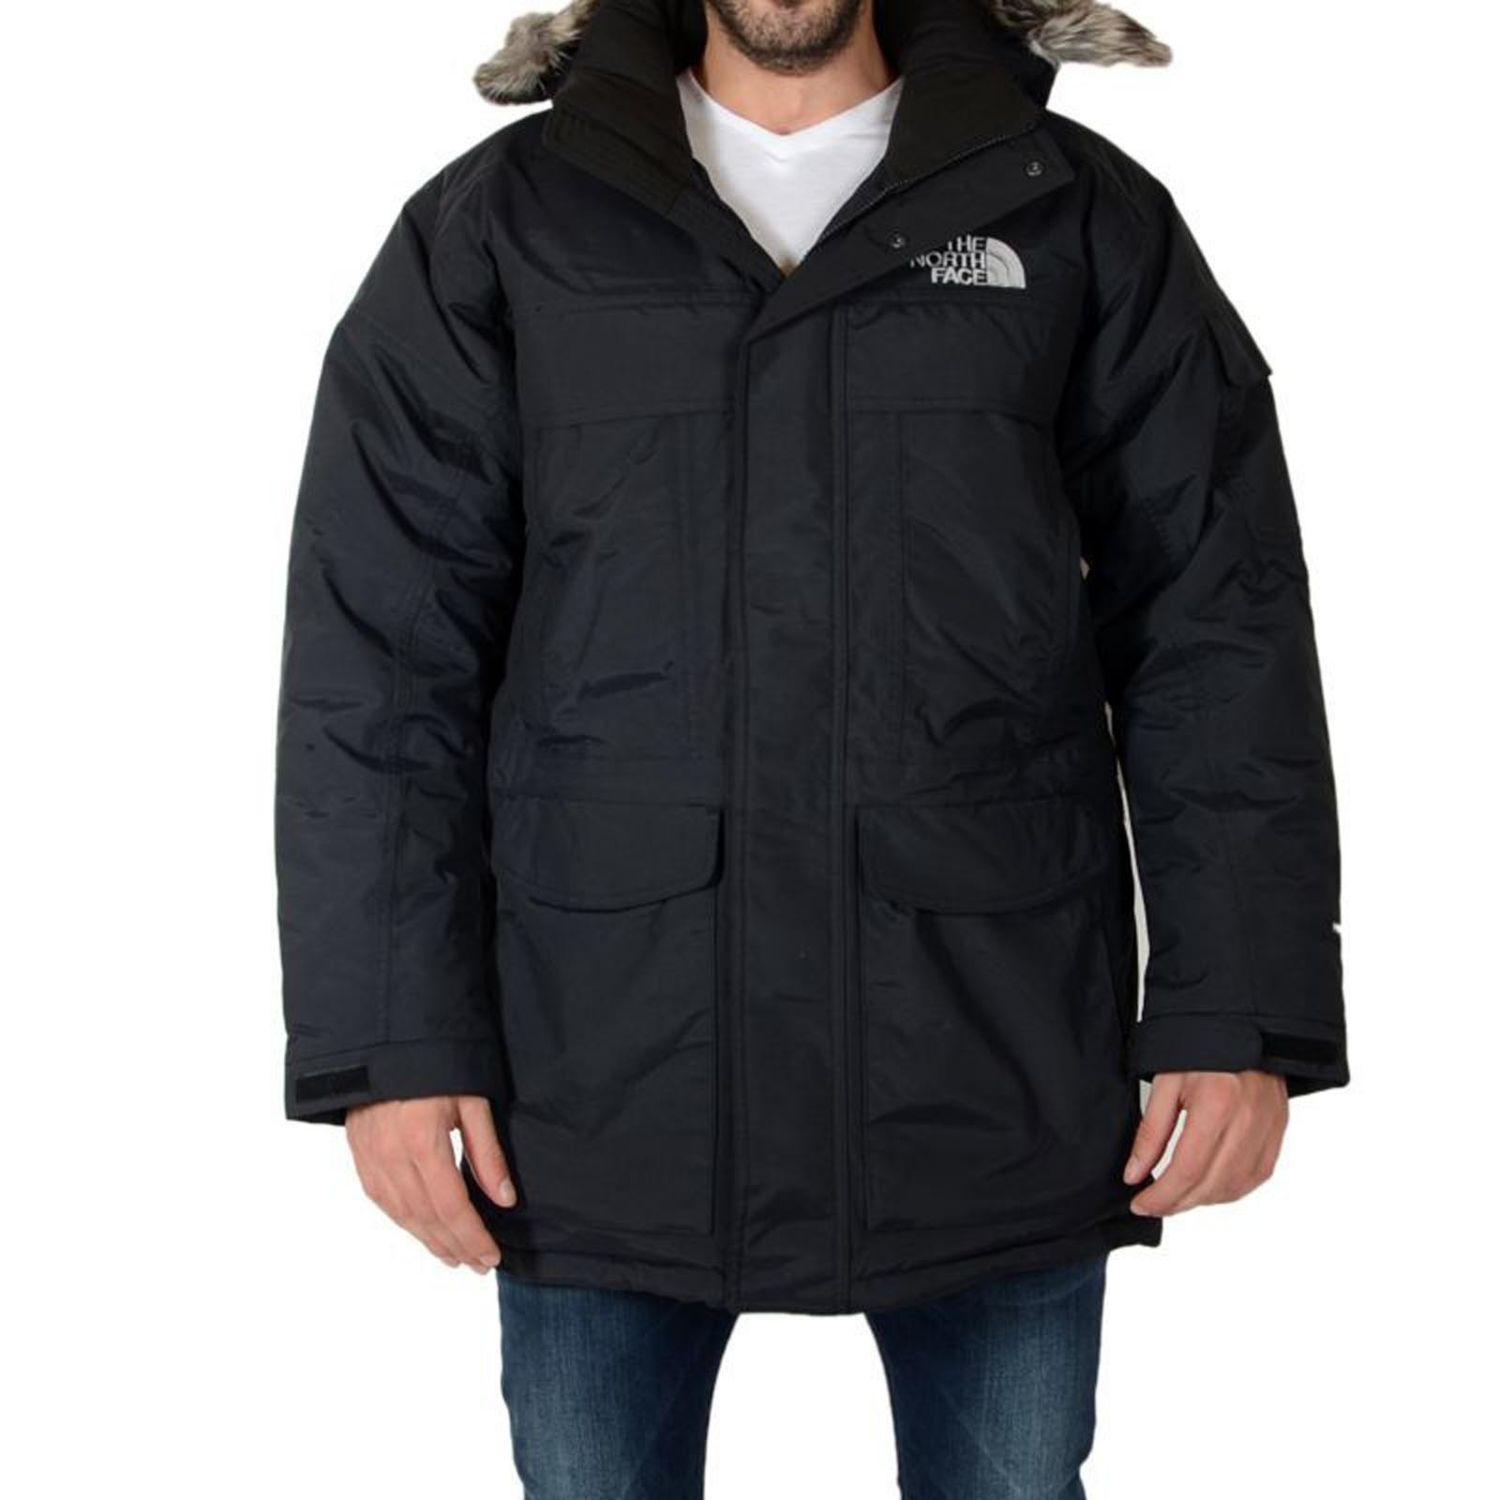 THE NORTH FACE- Doudoune Mcmurdo Parka Noir 2cd66acfbc9f